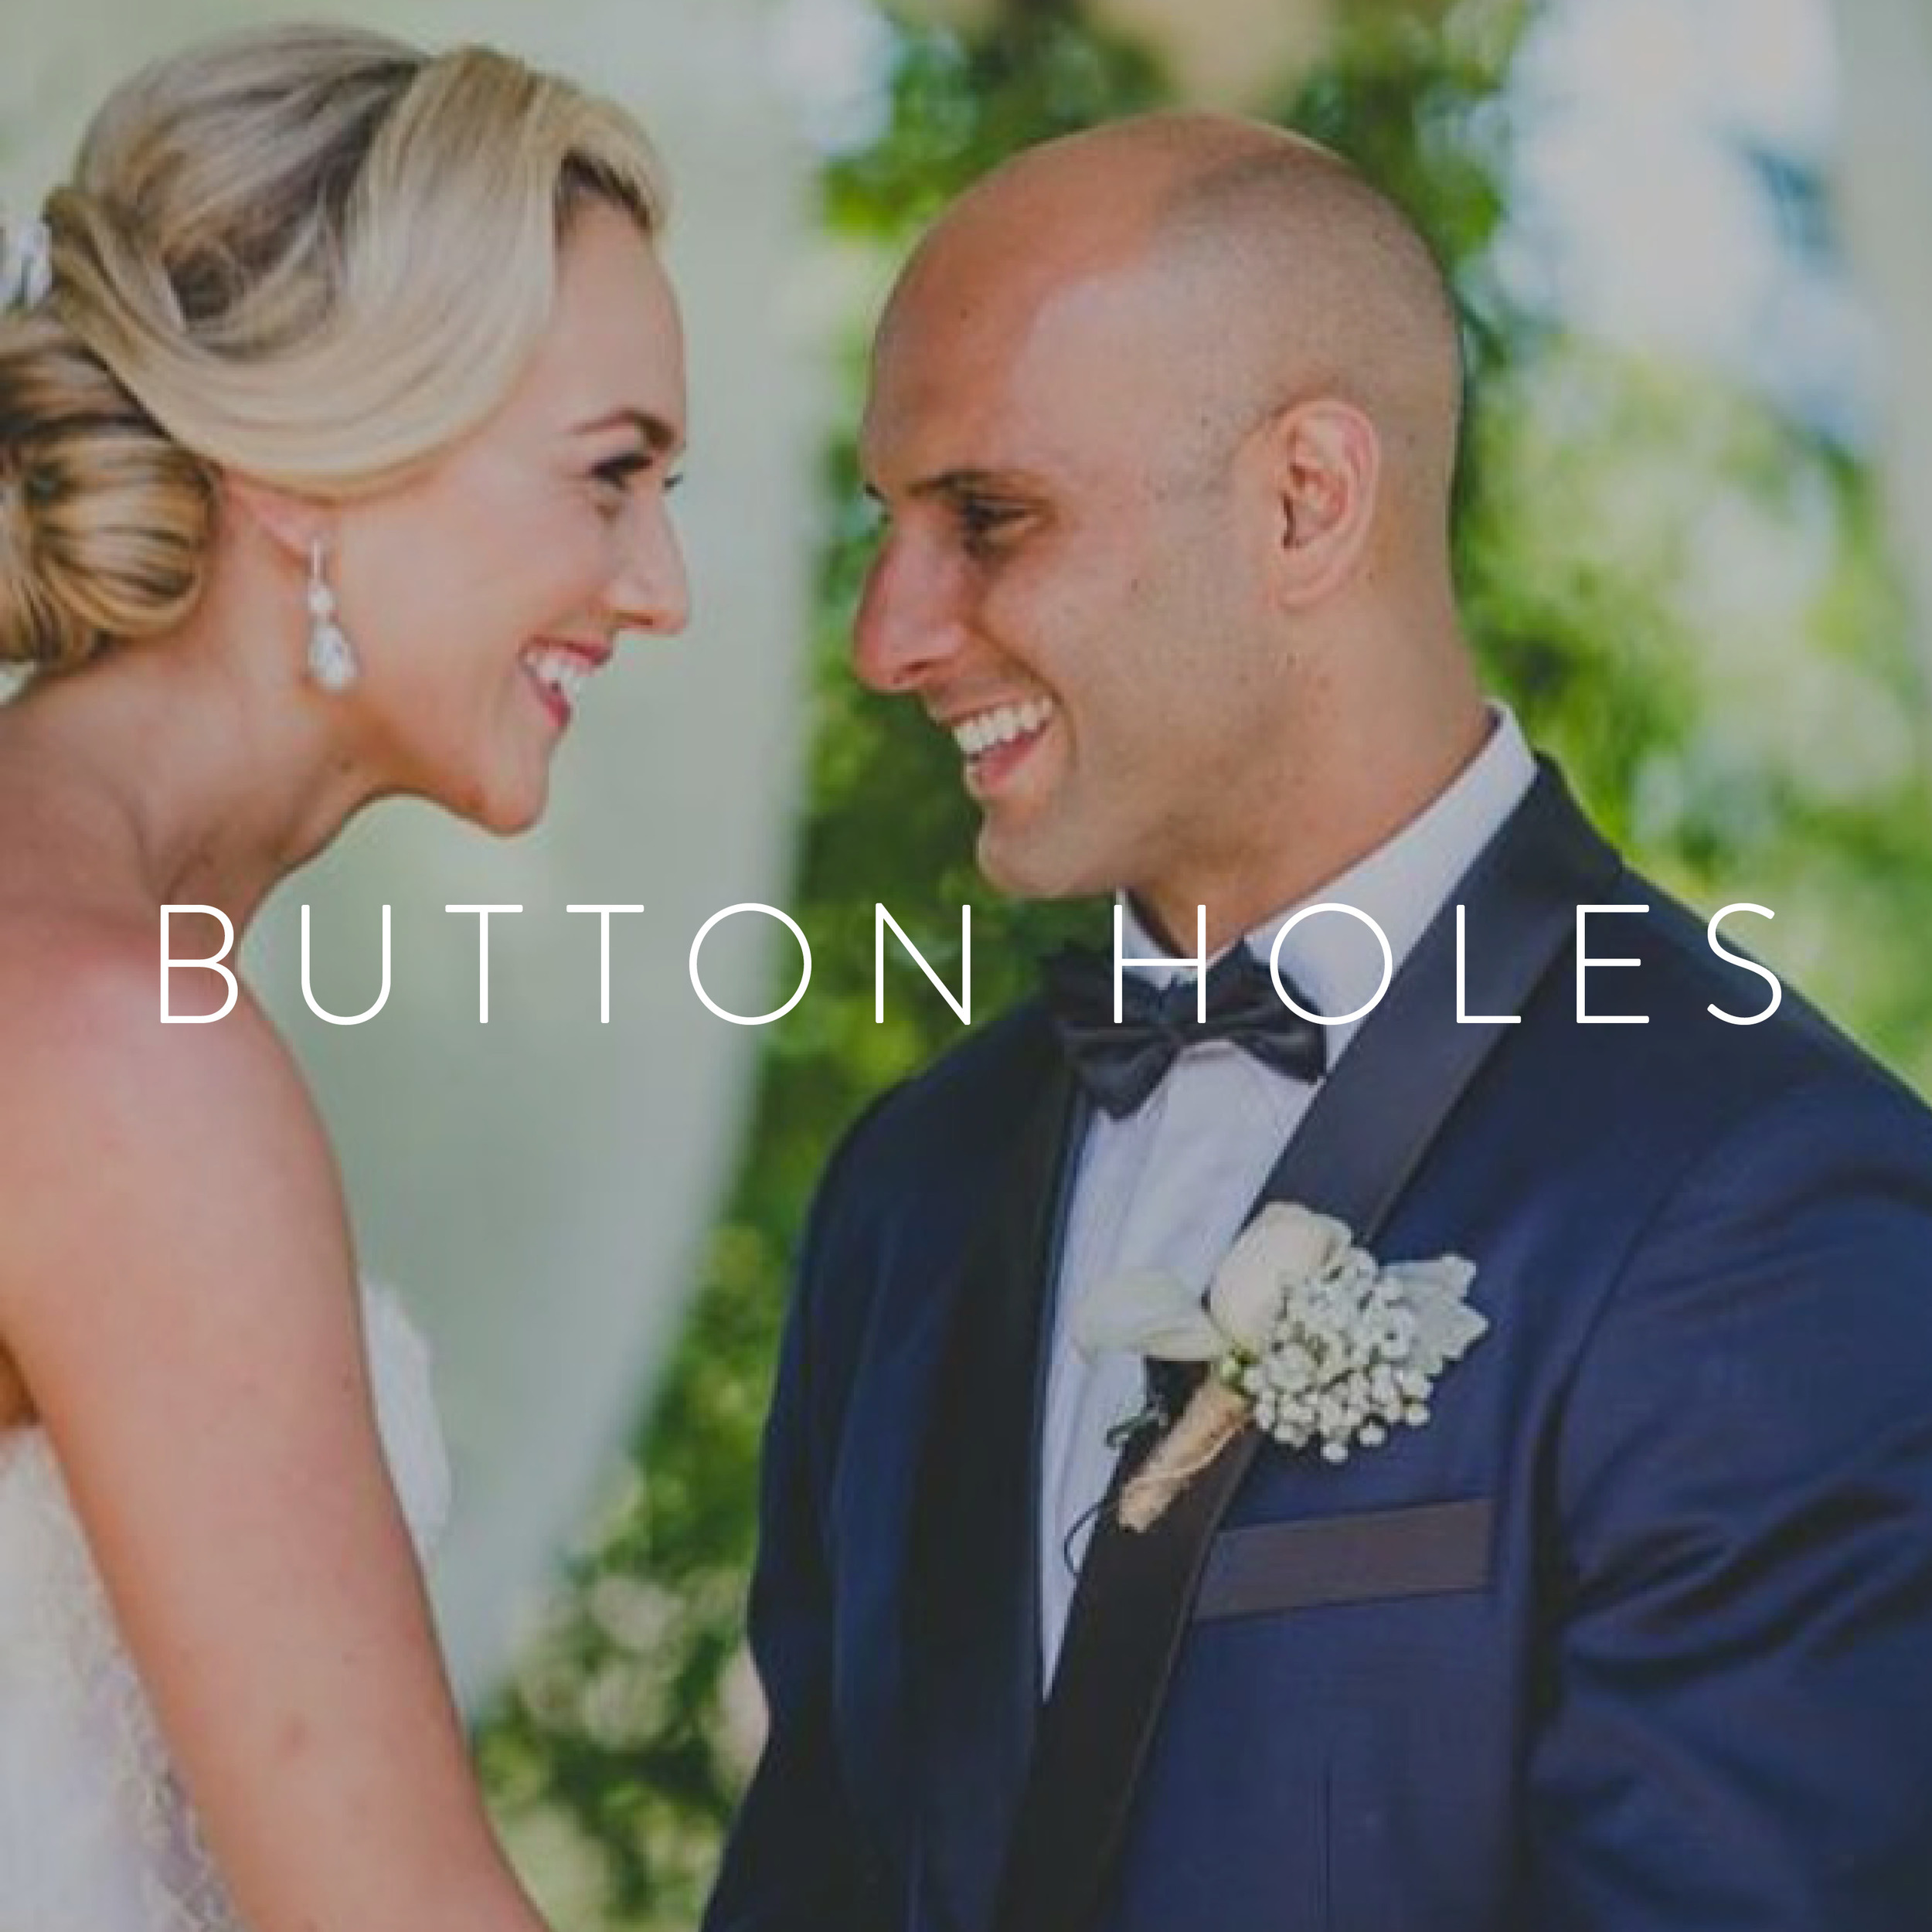 BUTTON HOLES